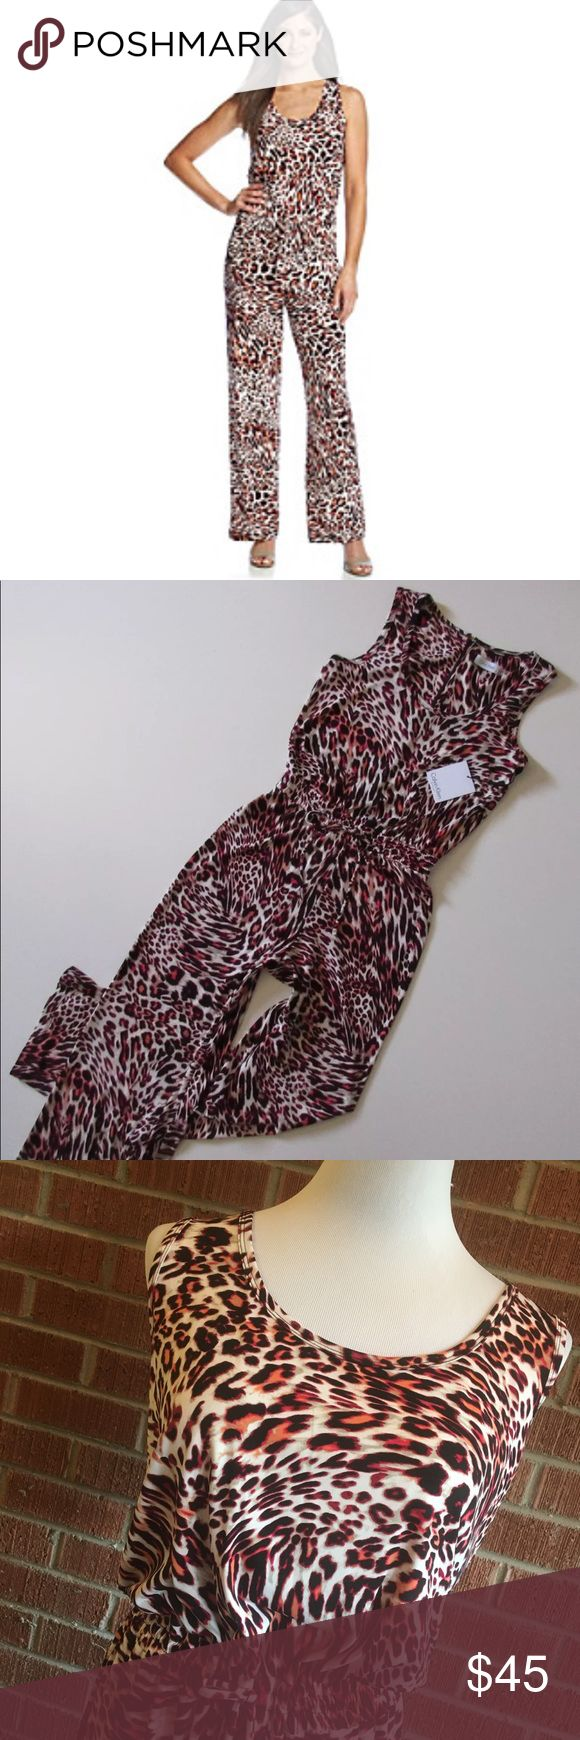 Calvin Klein pink black animal print jumpsuit Brand new with tags. Size 14. Really cute pink/black/white coloring and design. Comfortable and right on trend, too! Calvin Klein pink black animal print jumpsuit. Calvin Klein Pants Jumpsuits & Rompers